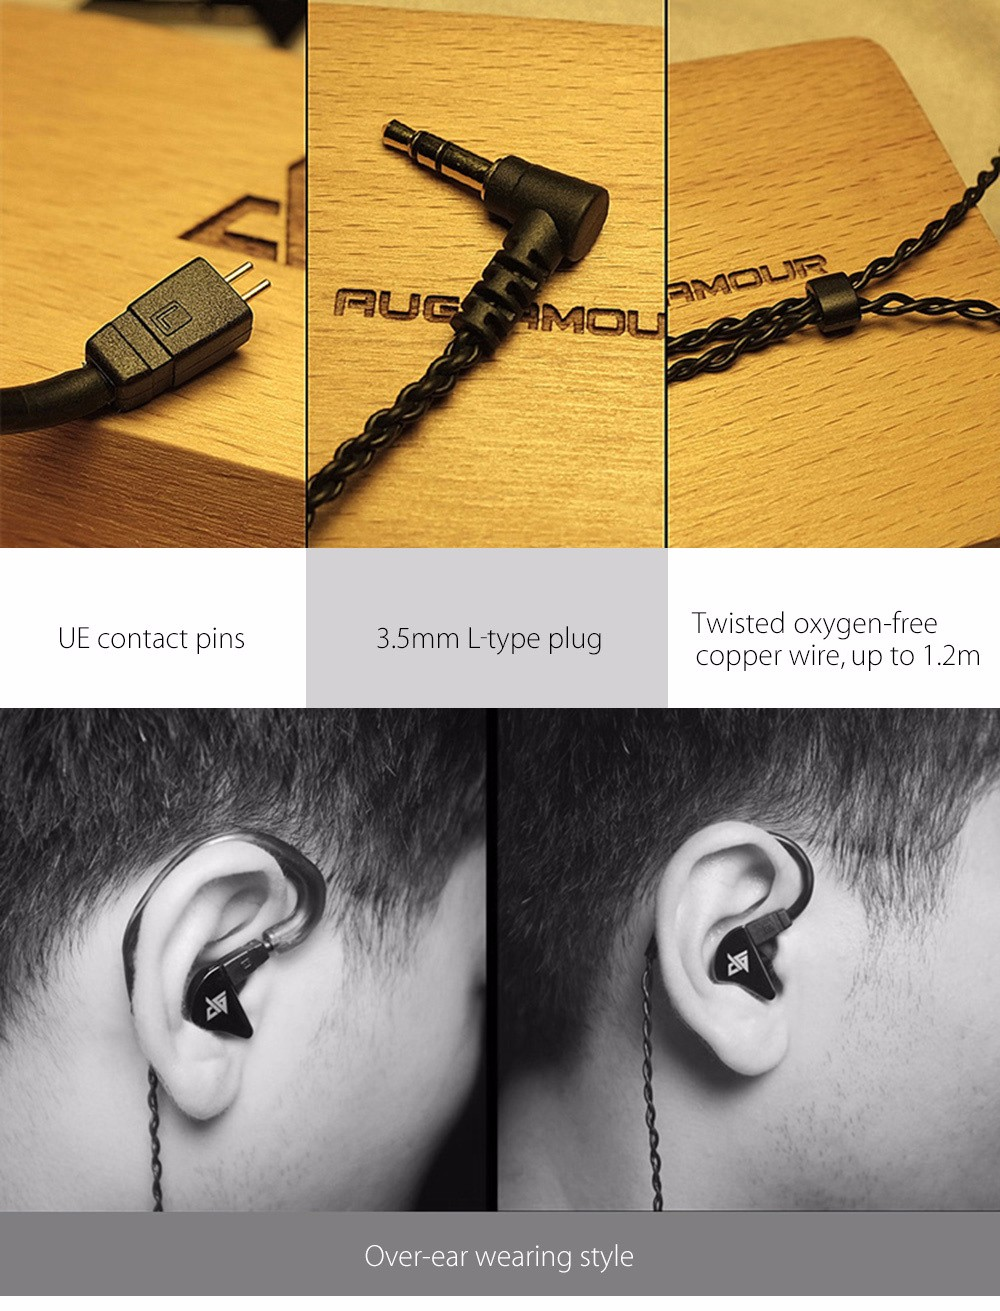 AuGlamour R8 Single Moving Coil Stereo HiFi Cord Removable In-ear Earphone